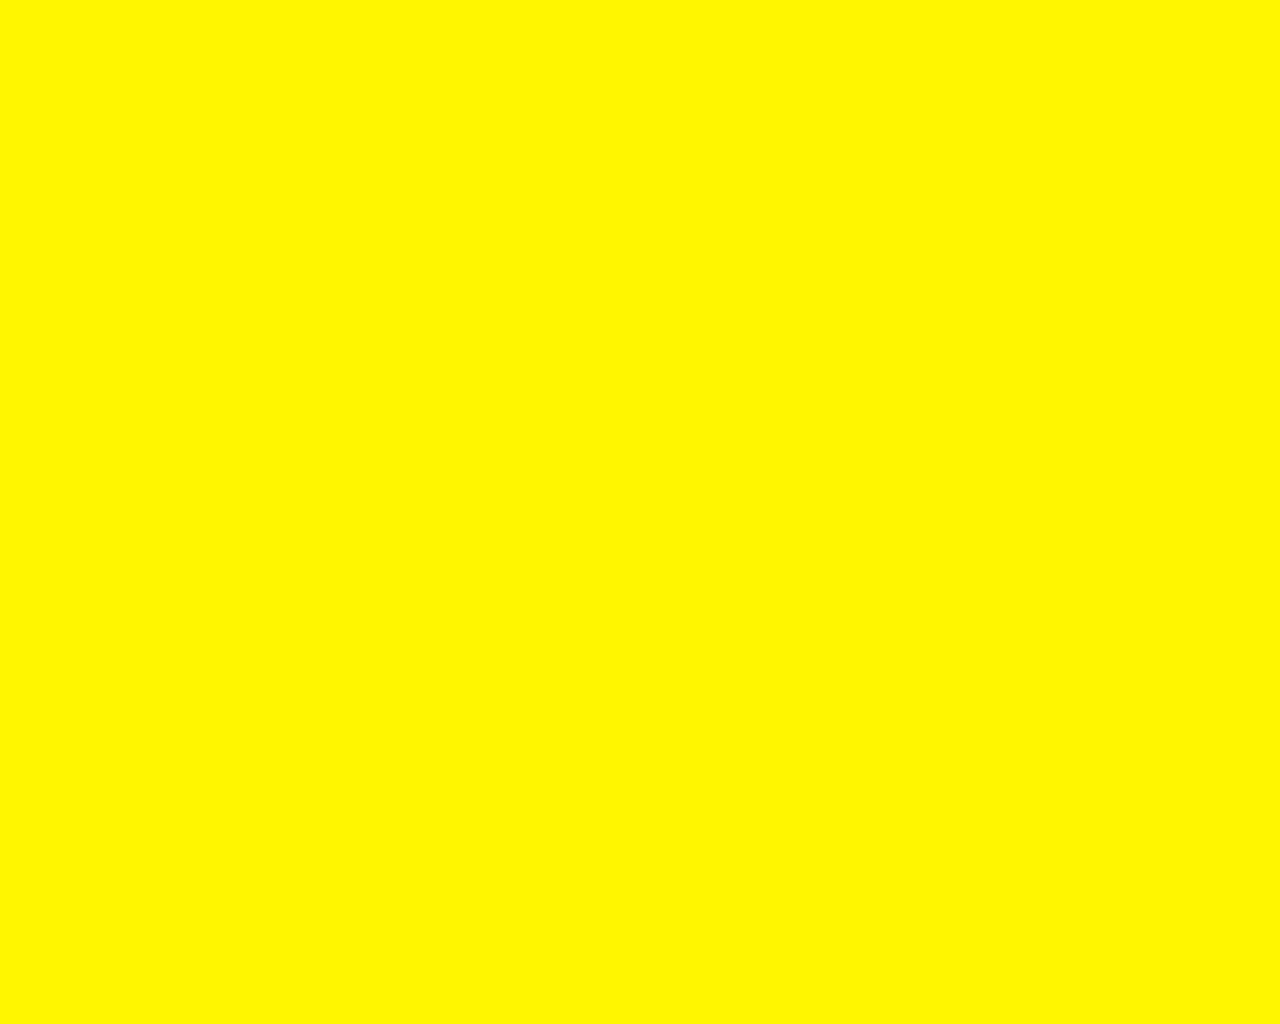 1280x1024 Cadmium Yellow Solid Color Background